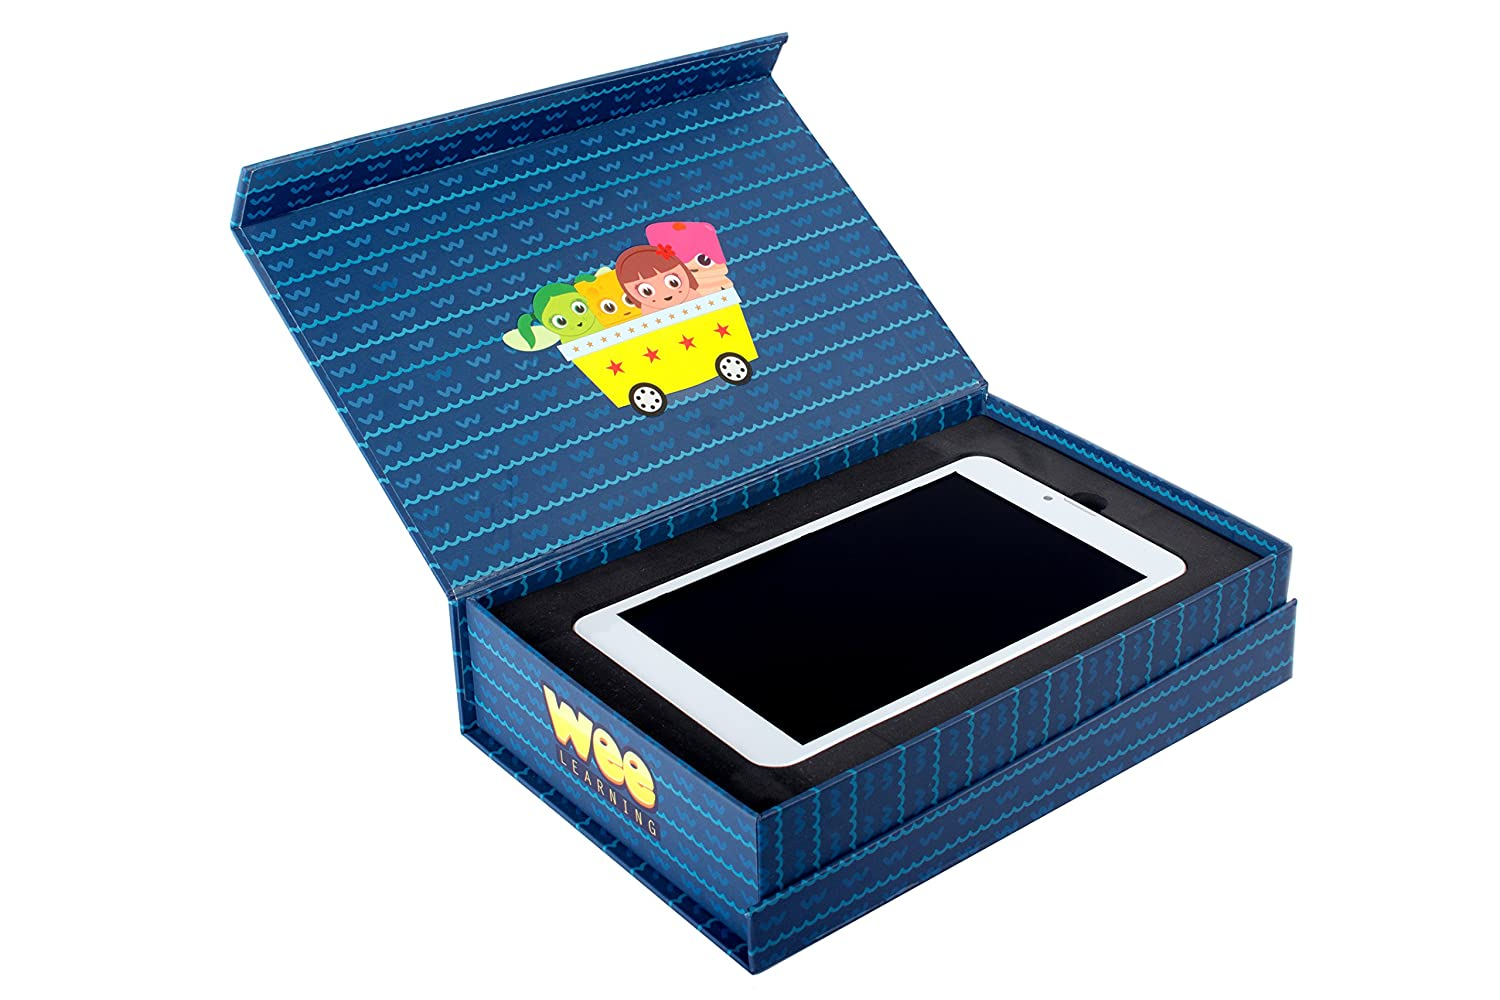 Wee Learning Tablet for Preschool Kids